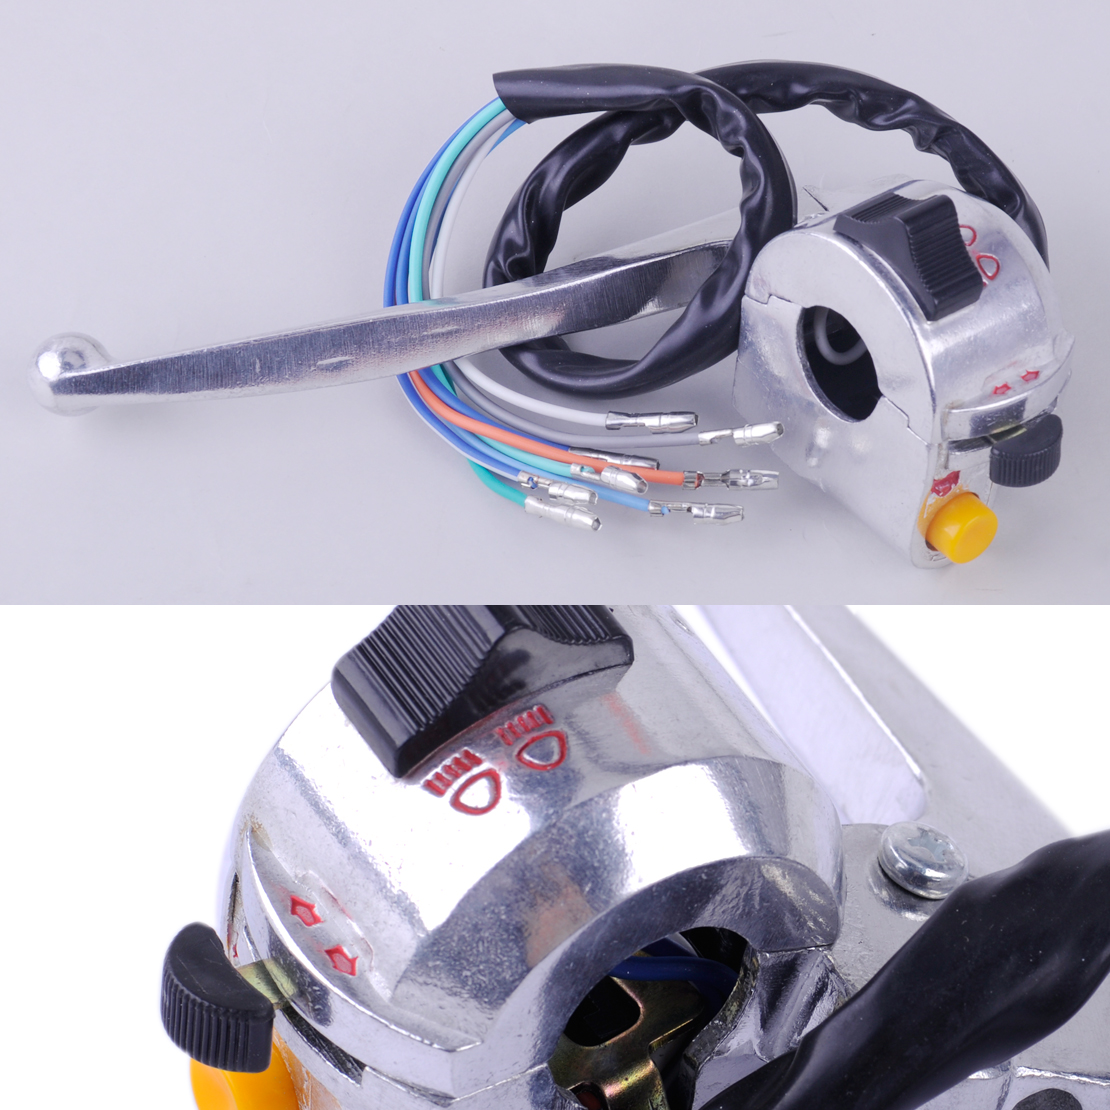 beler Motorcycle Silver Left Handlebar Switch Fit for 50cc Retro Scooter Mount ATV Dirt Bike